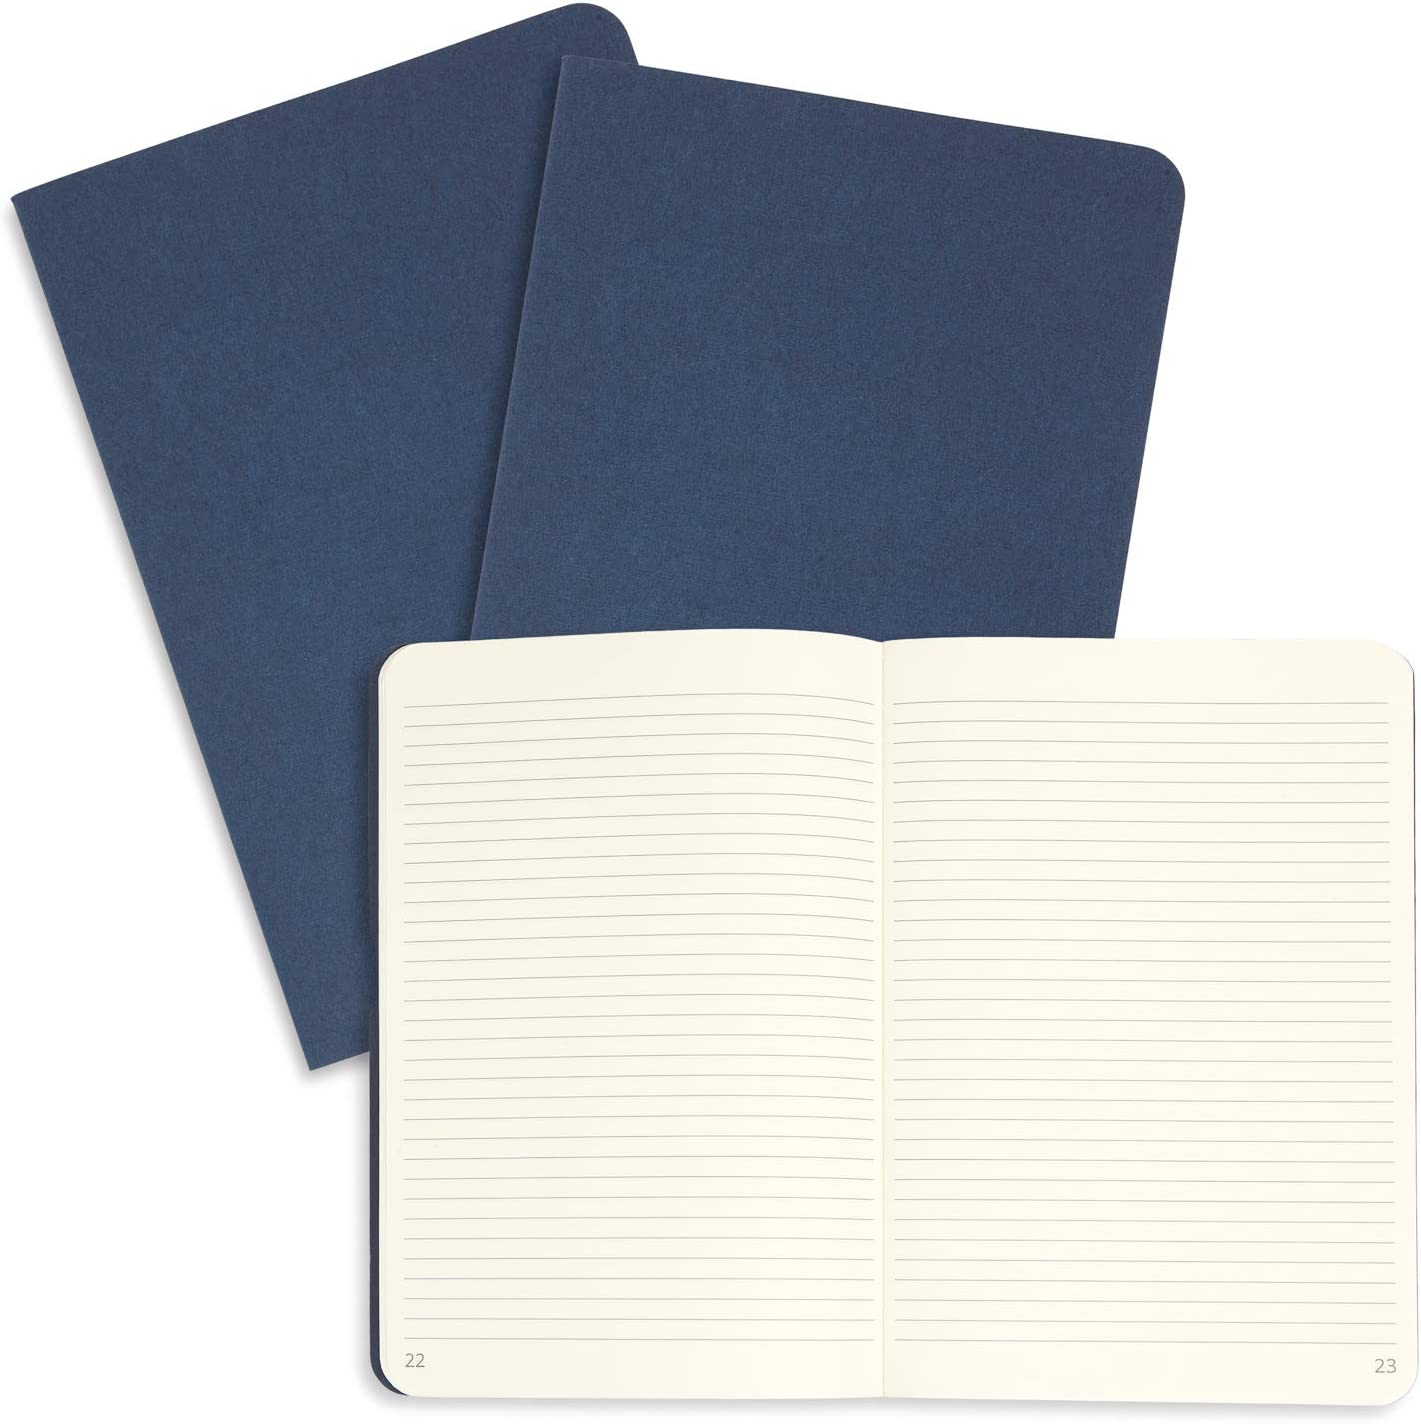 """3 Pack Journal Set with Lined Paper 64 Pages Blue Summit Supplies Executive Journals Lightweight Travel Journal with Dark Blue Linen Cover Set of 3 9/"""" x 6/"""""""